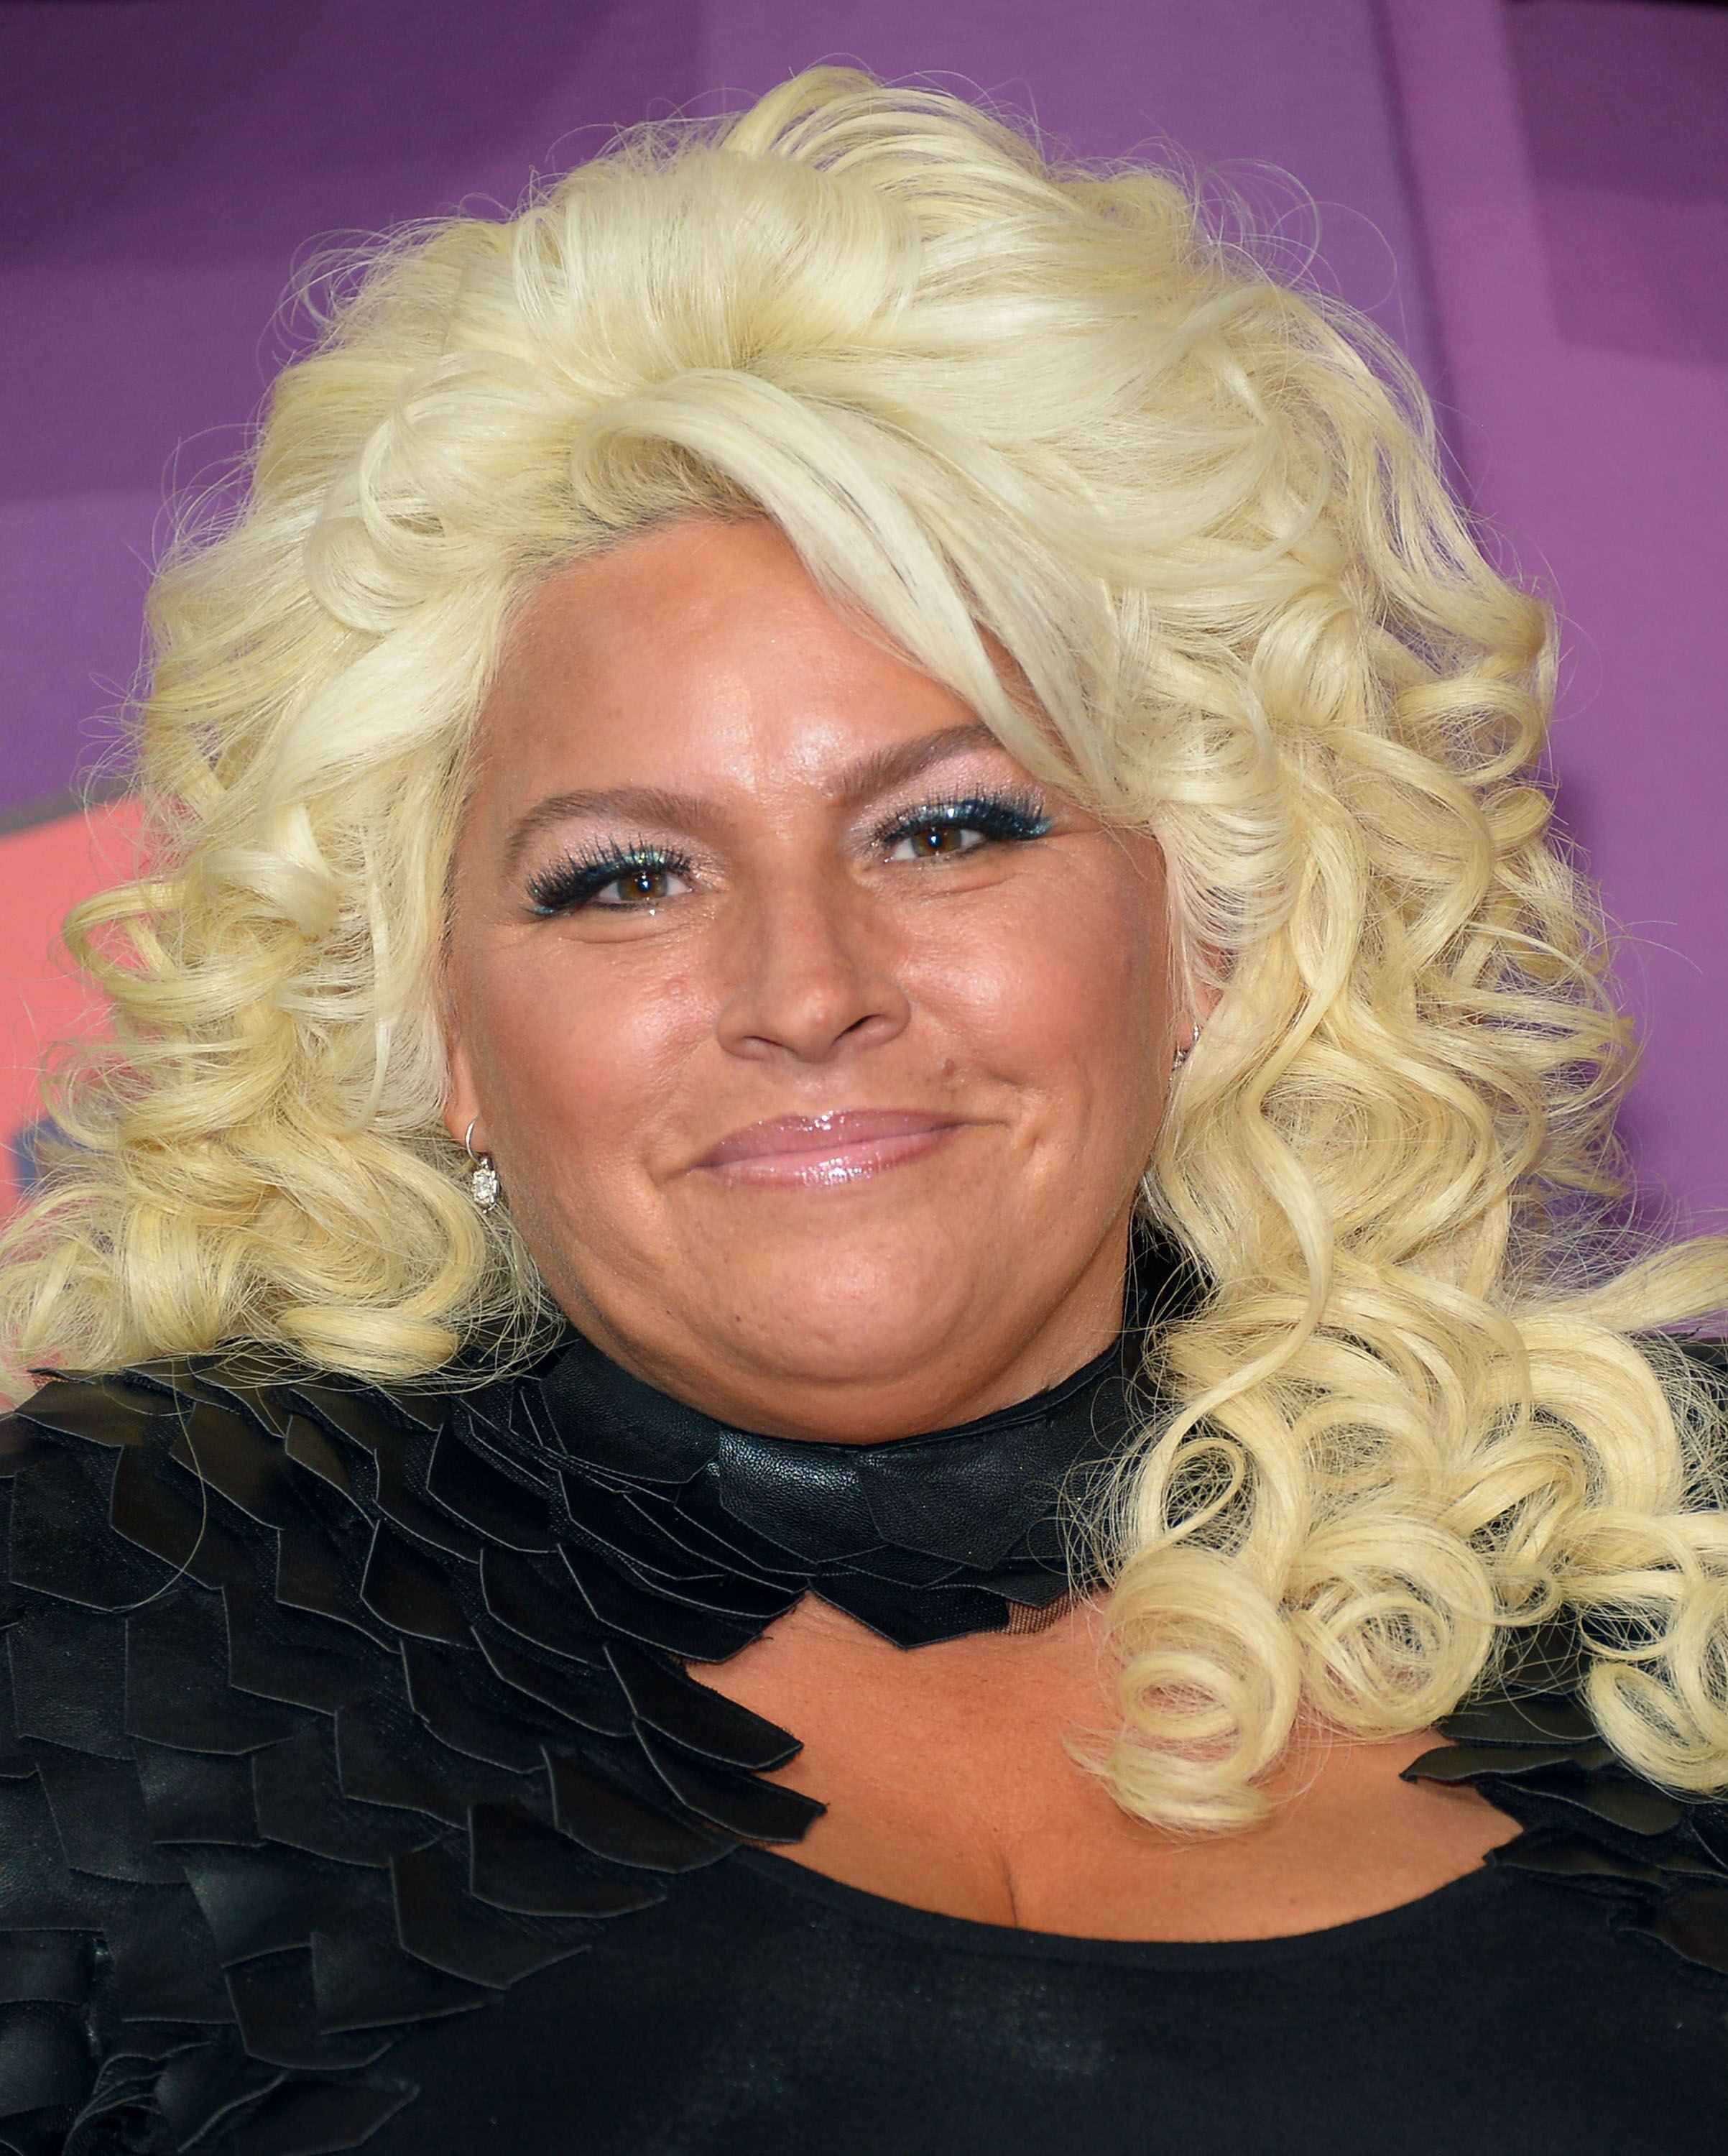 Beth Chapman at the CMT Music awards at the Bridgestone Arena on June 4, 2014 in Nashville, Tennessee | Photo: Getty Images